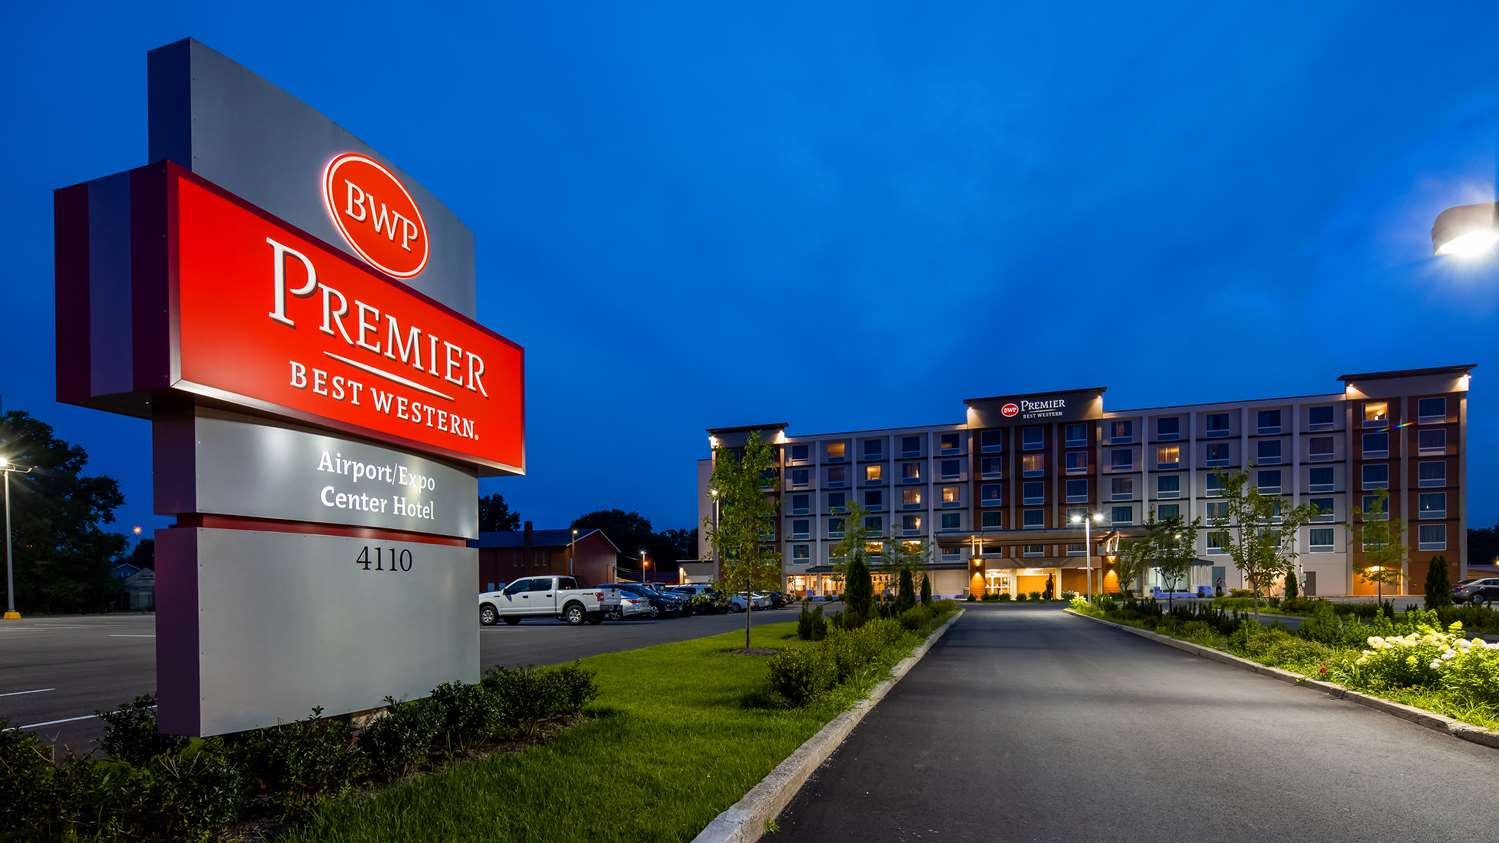 Bw Premier Airport Expo Center Hotel Louisville Ky